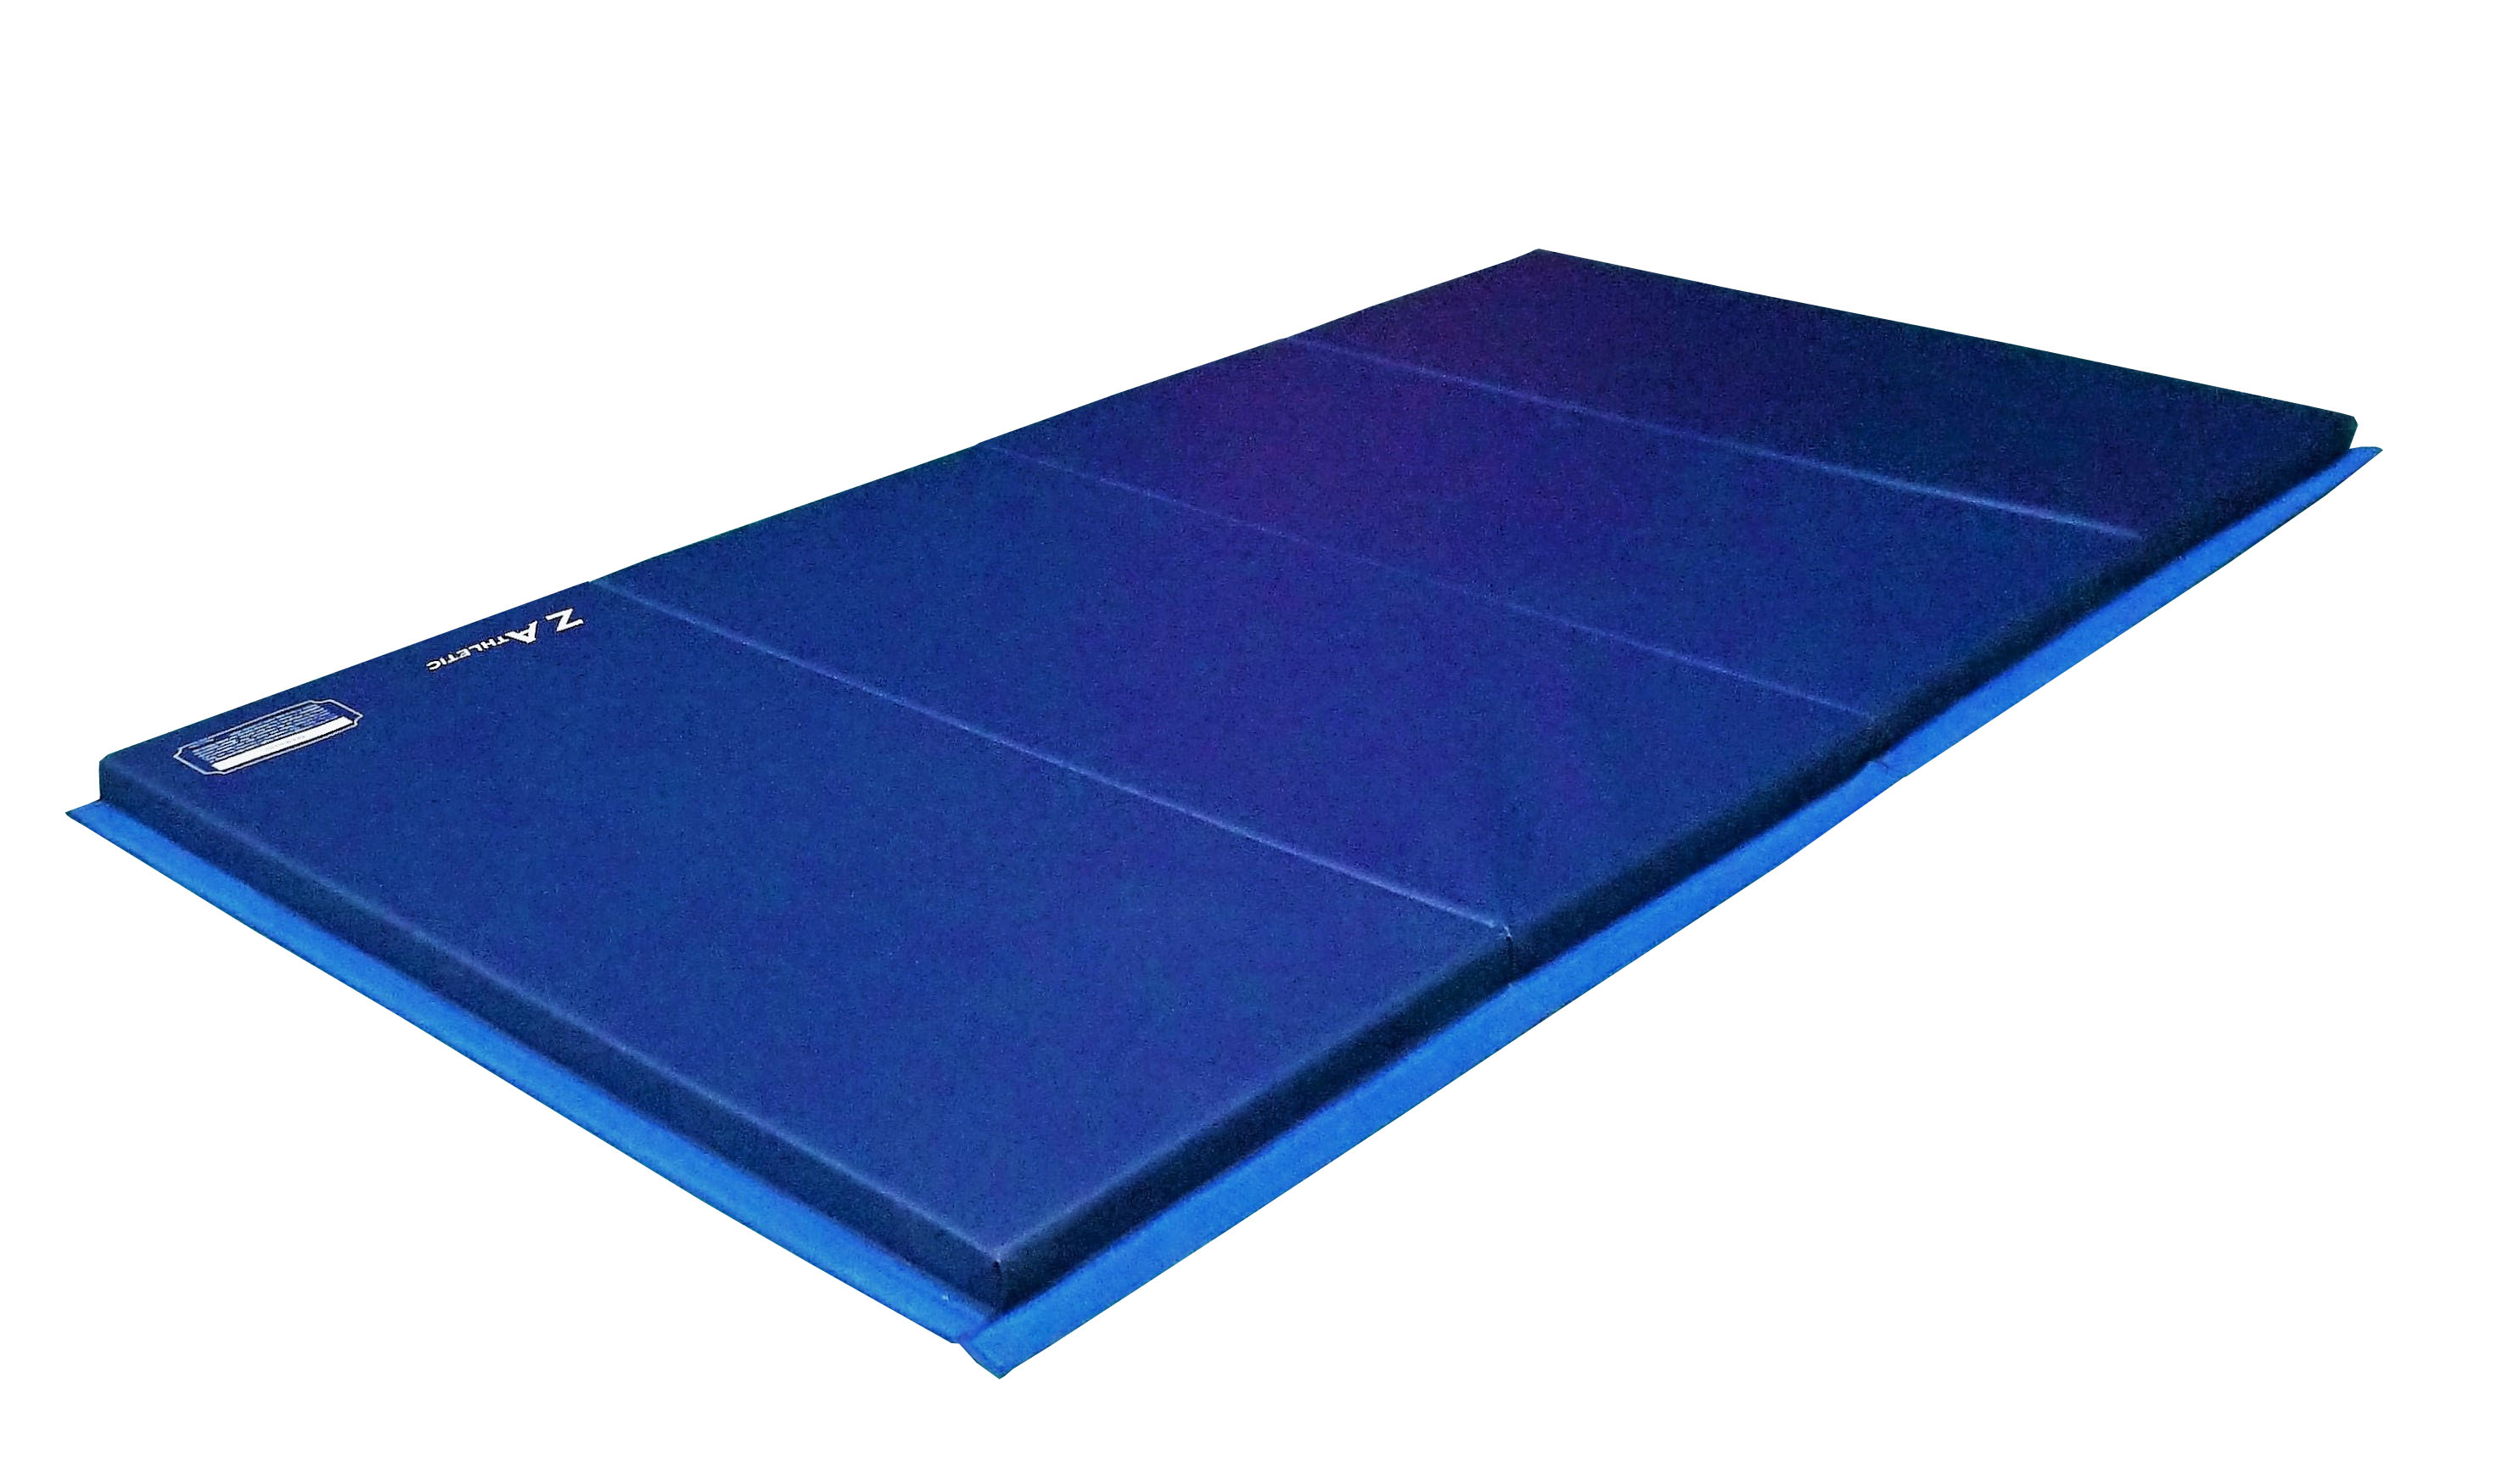 for leather folding pin exercise diy wonlink durable tumbling kids ladies gymnastics gymnastic pu mats fitness mat yoga